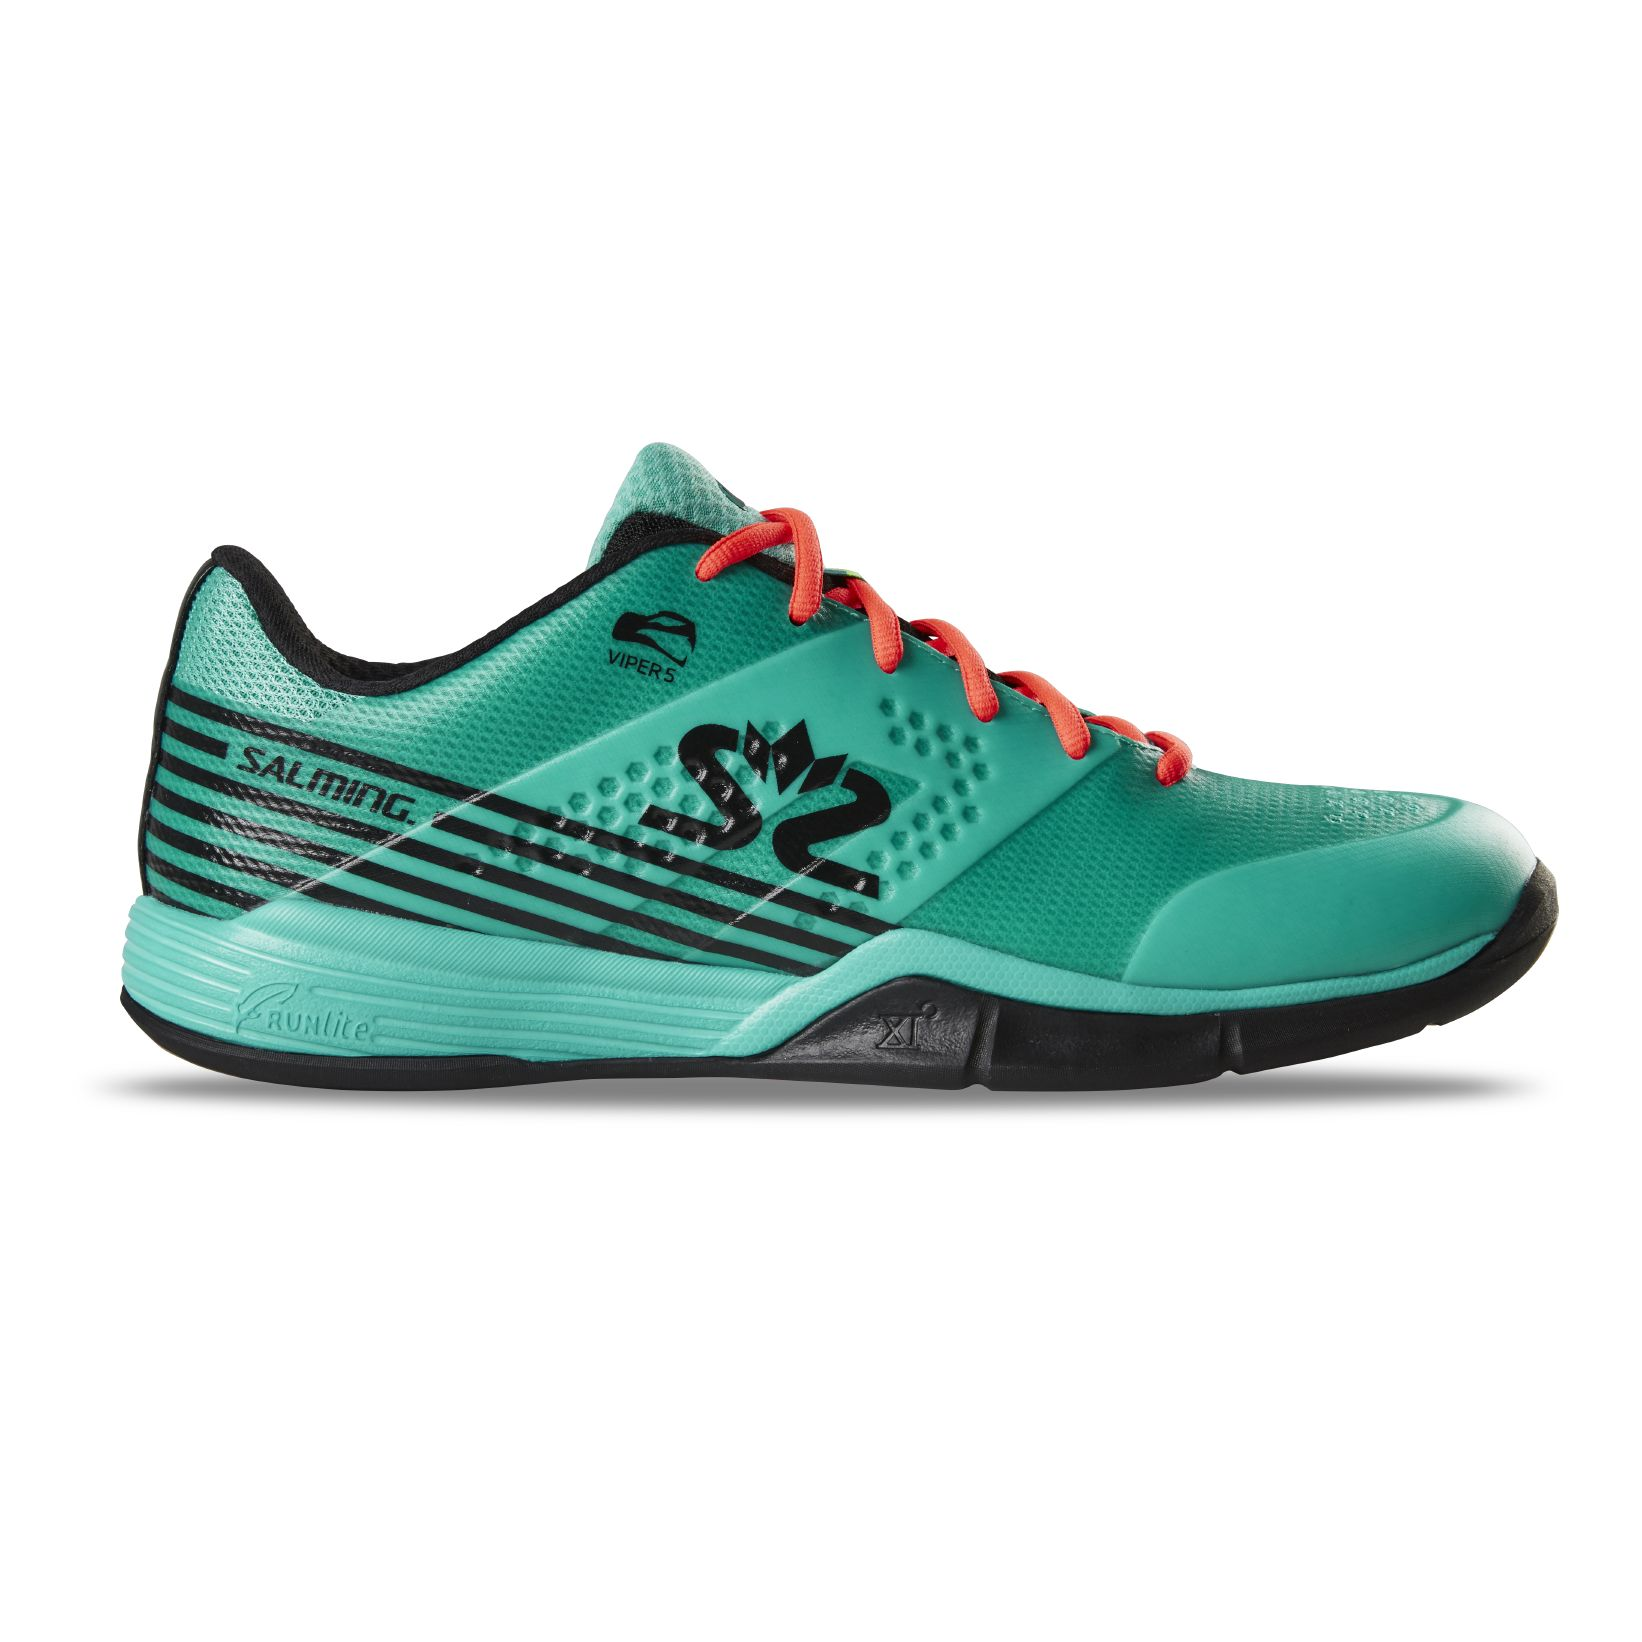 Salming Viper 5 Shoe Men Turquoise/Black 11,5 UK - 47 1/3 EUR - 30,5 cm